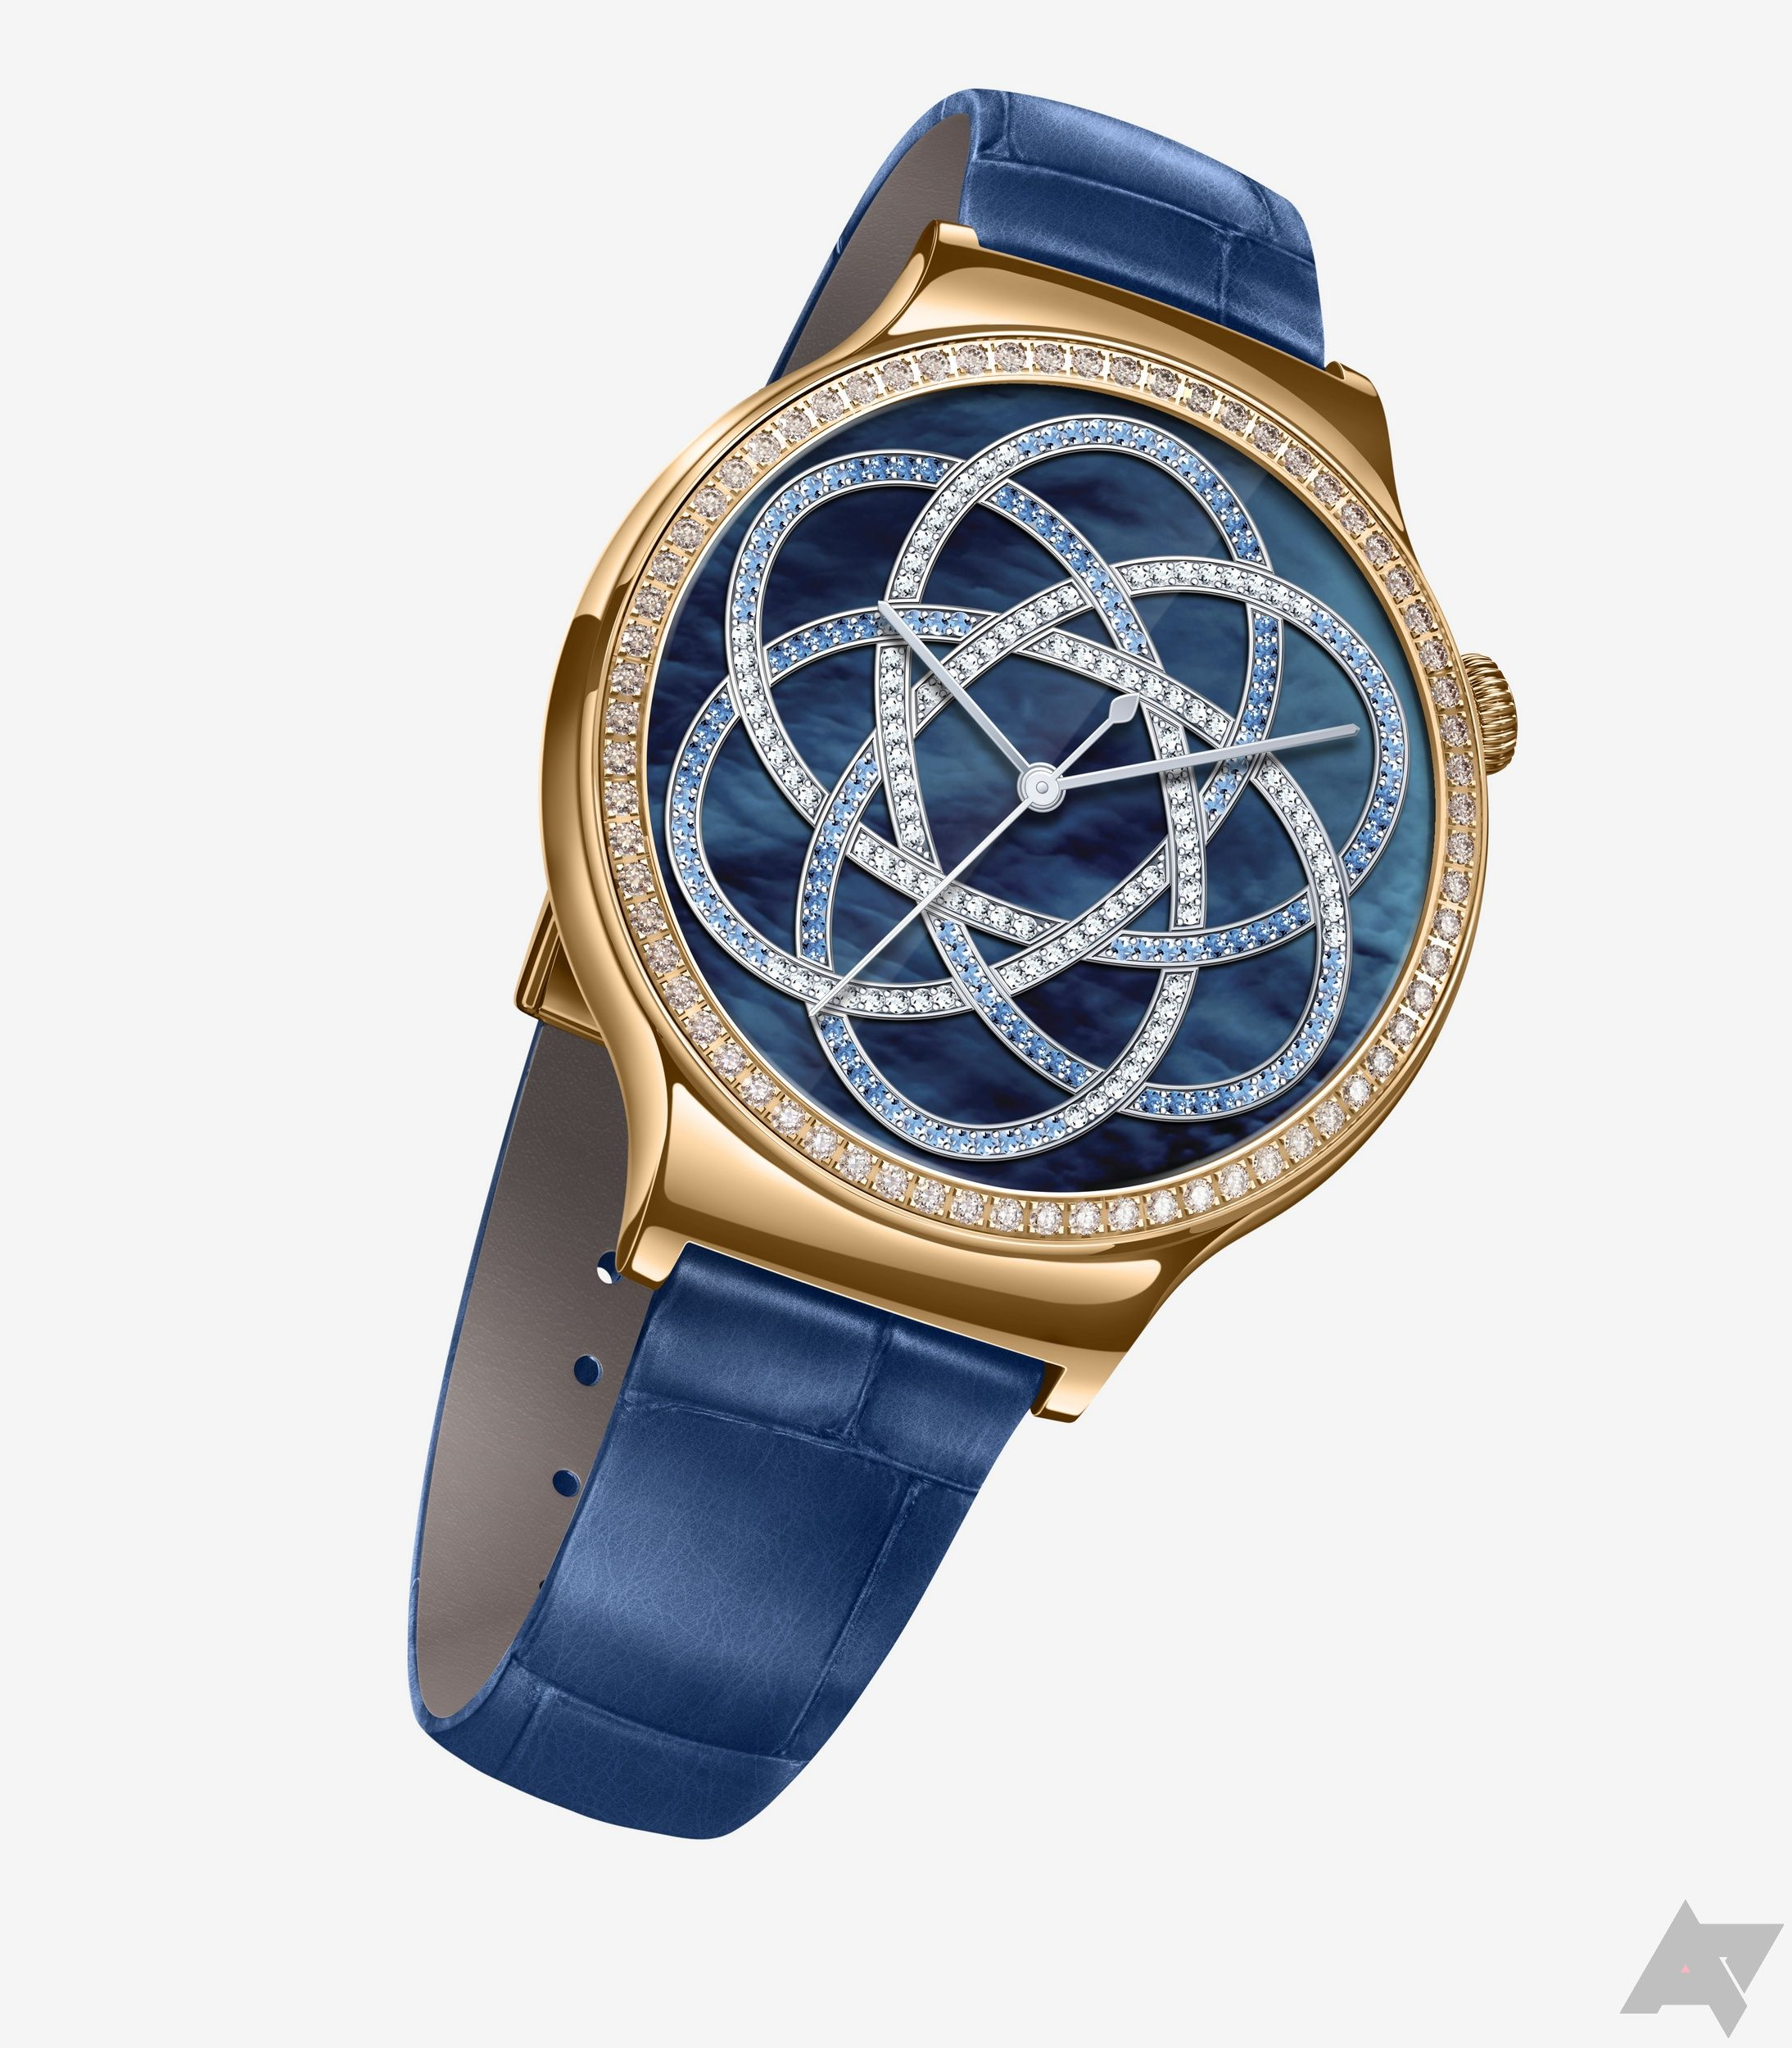 wm_Huawei Watch Jewel_2